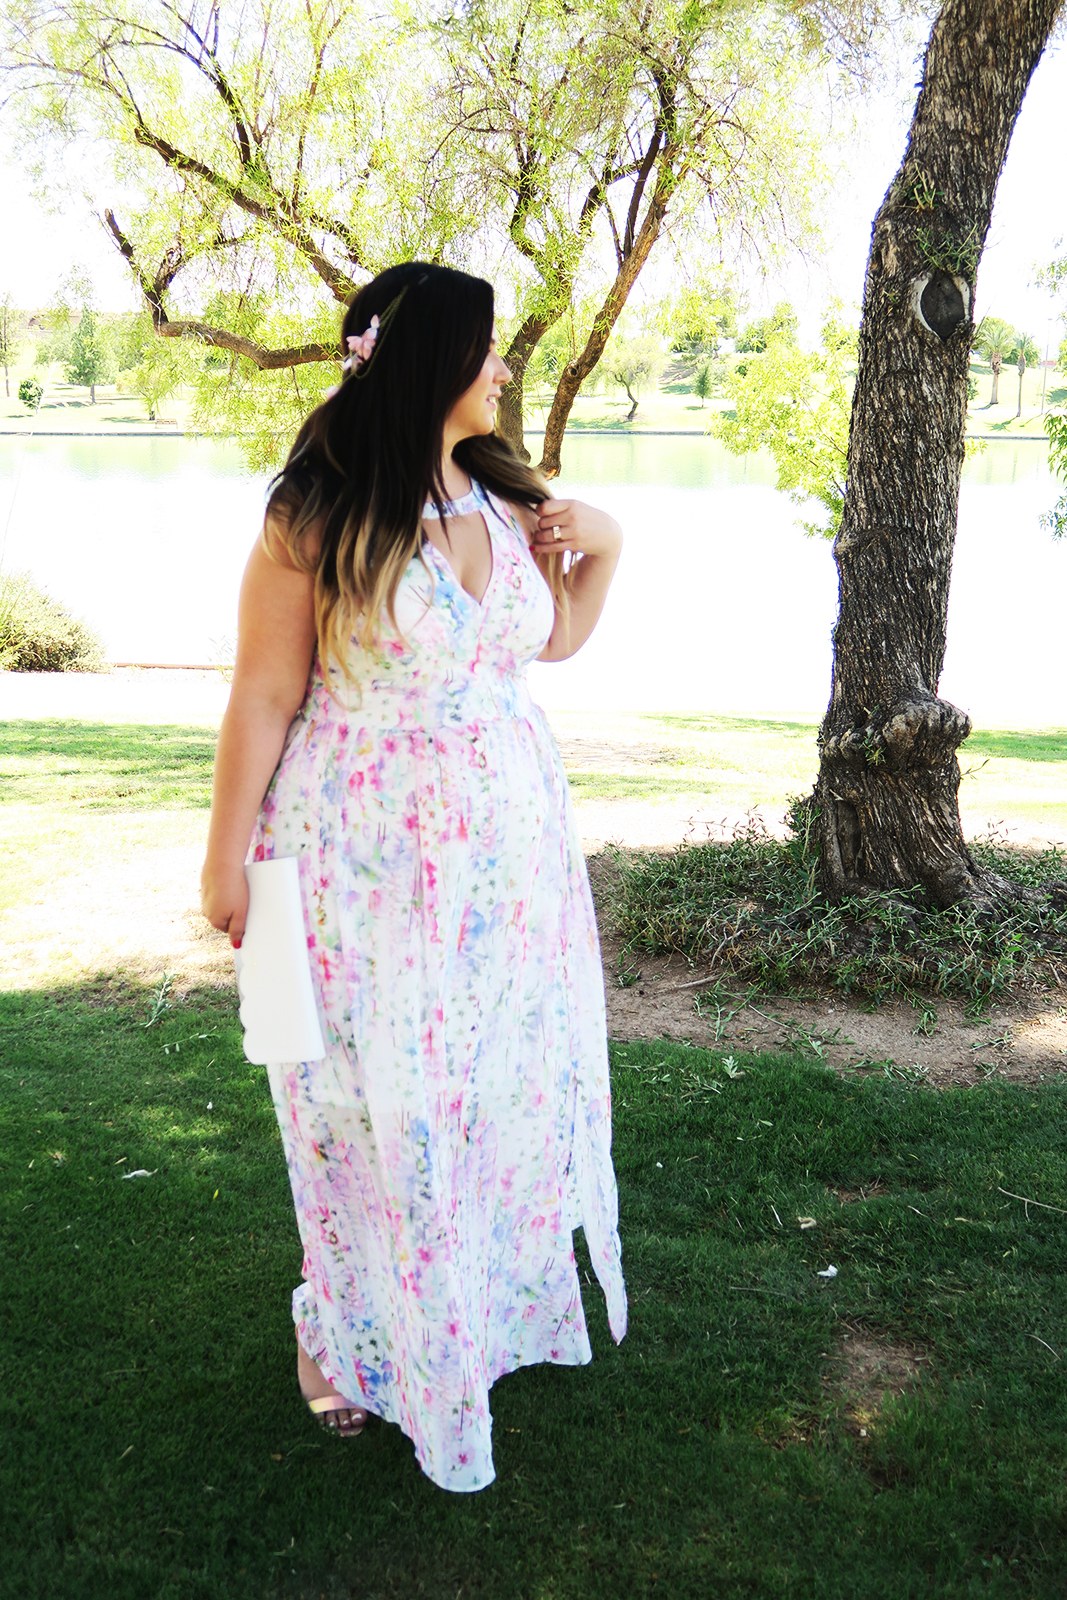 Dress code for wedding garden party -  Garden Party Chic Dress Code A Dreamy Watercolor Floral Maxi Is The Perfect Option For This Typically Outdoor Wedding I Went With A Barely There